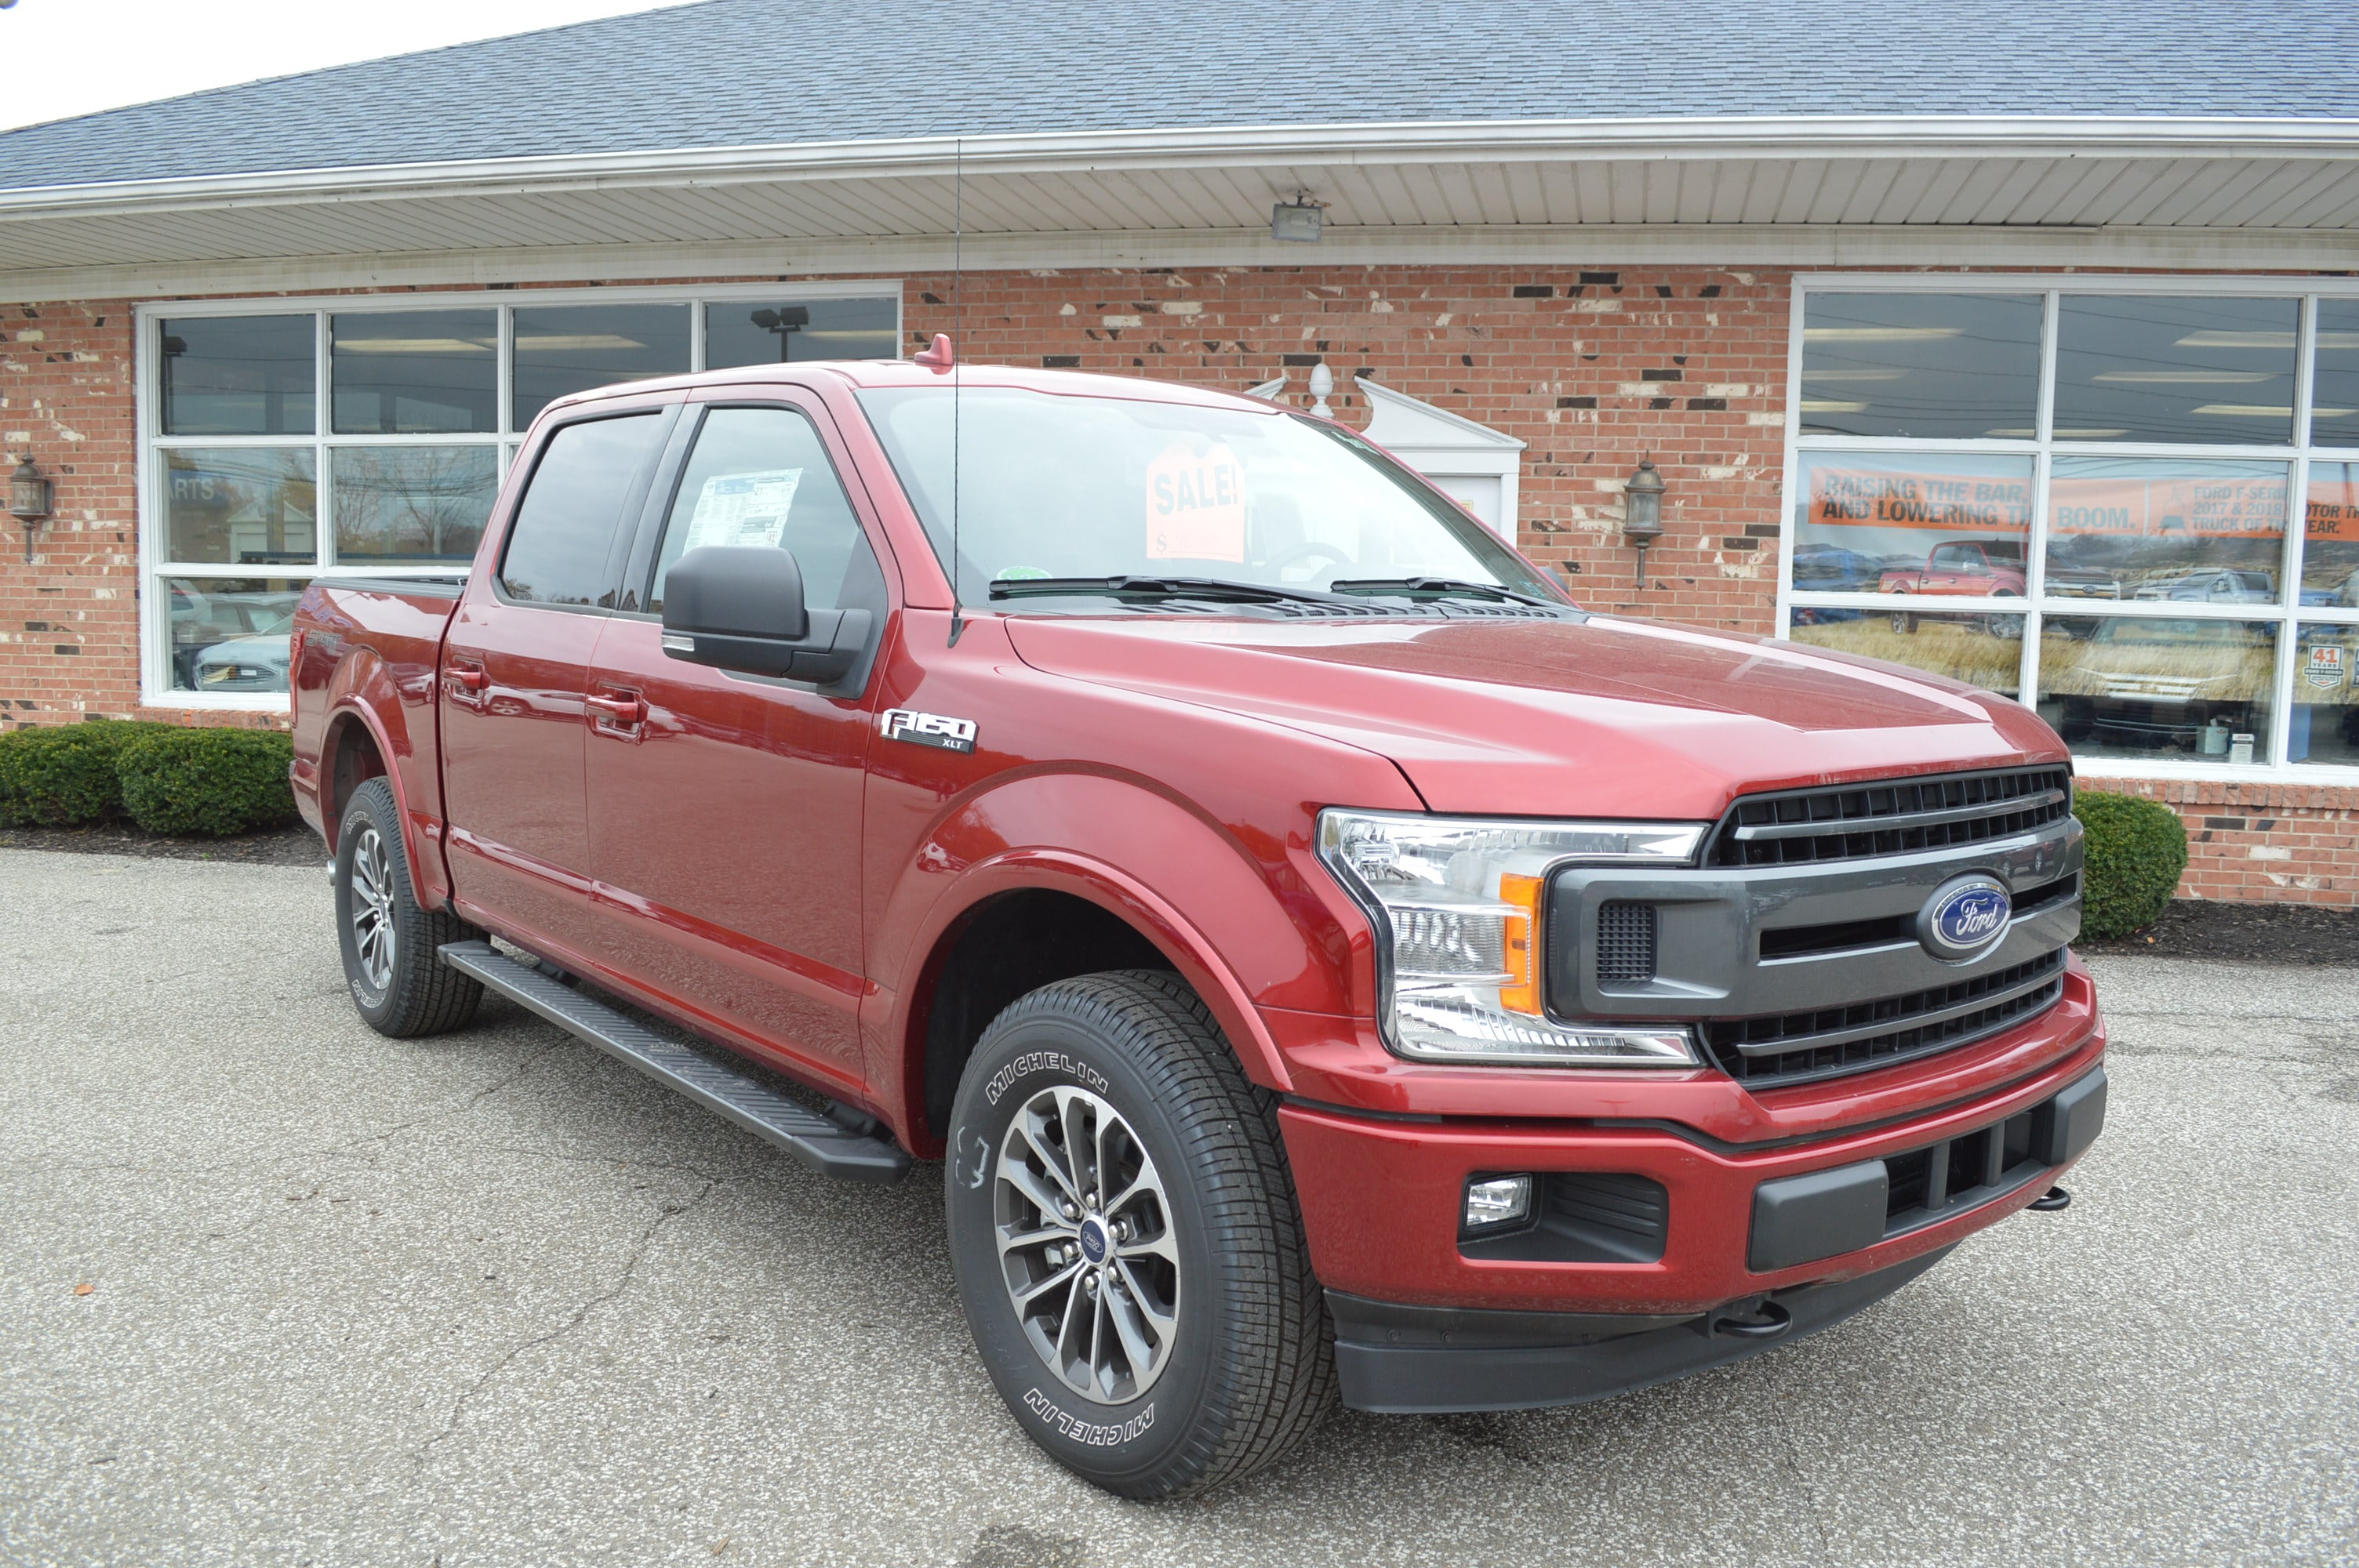 New 2018 Ford F-150 XLT Luxury 302A w/ XLT Sport Appearance Pkg. Super Truck  For sale in Edinboro, PA